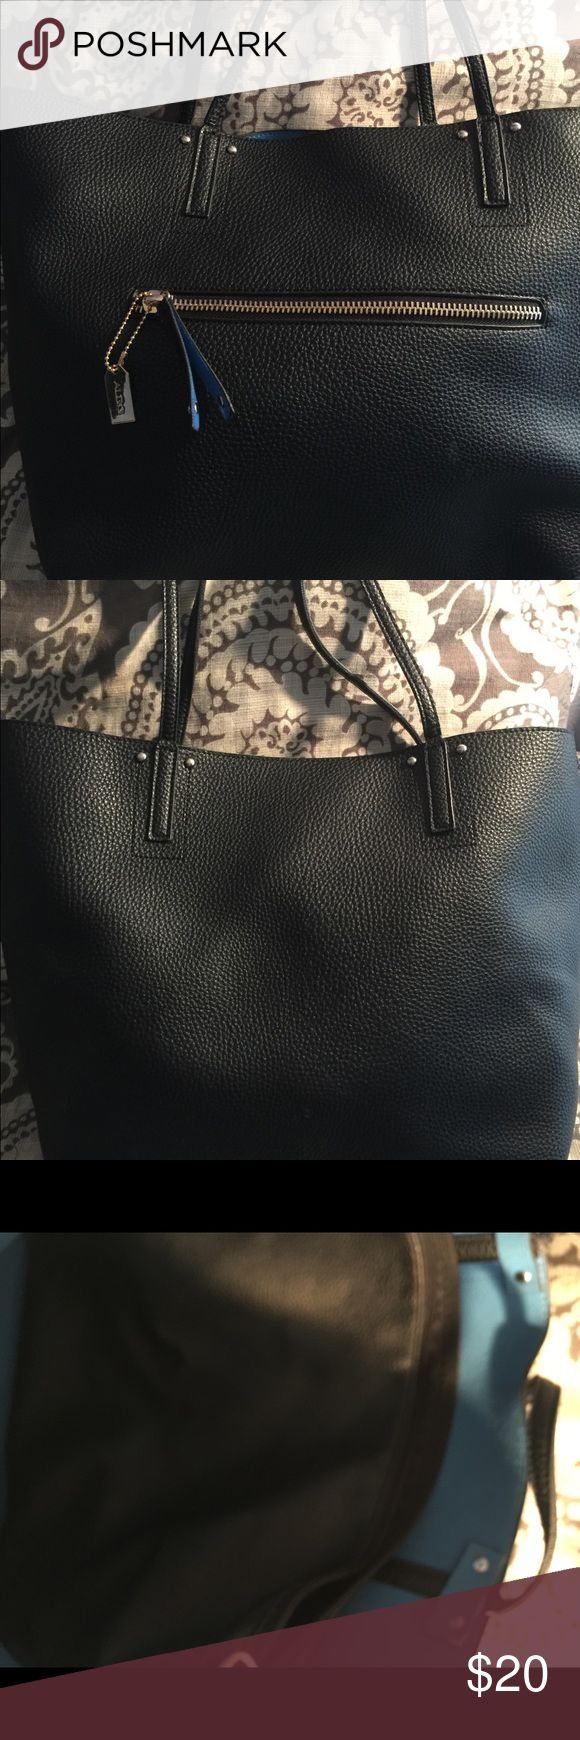 Aldo tote bag Nice back tote bag, used, has a little rip, can barely see it. Aldo Bags Totes